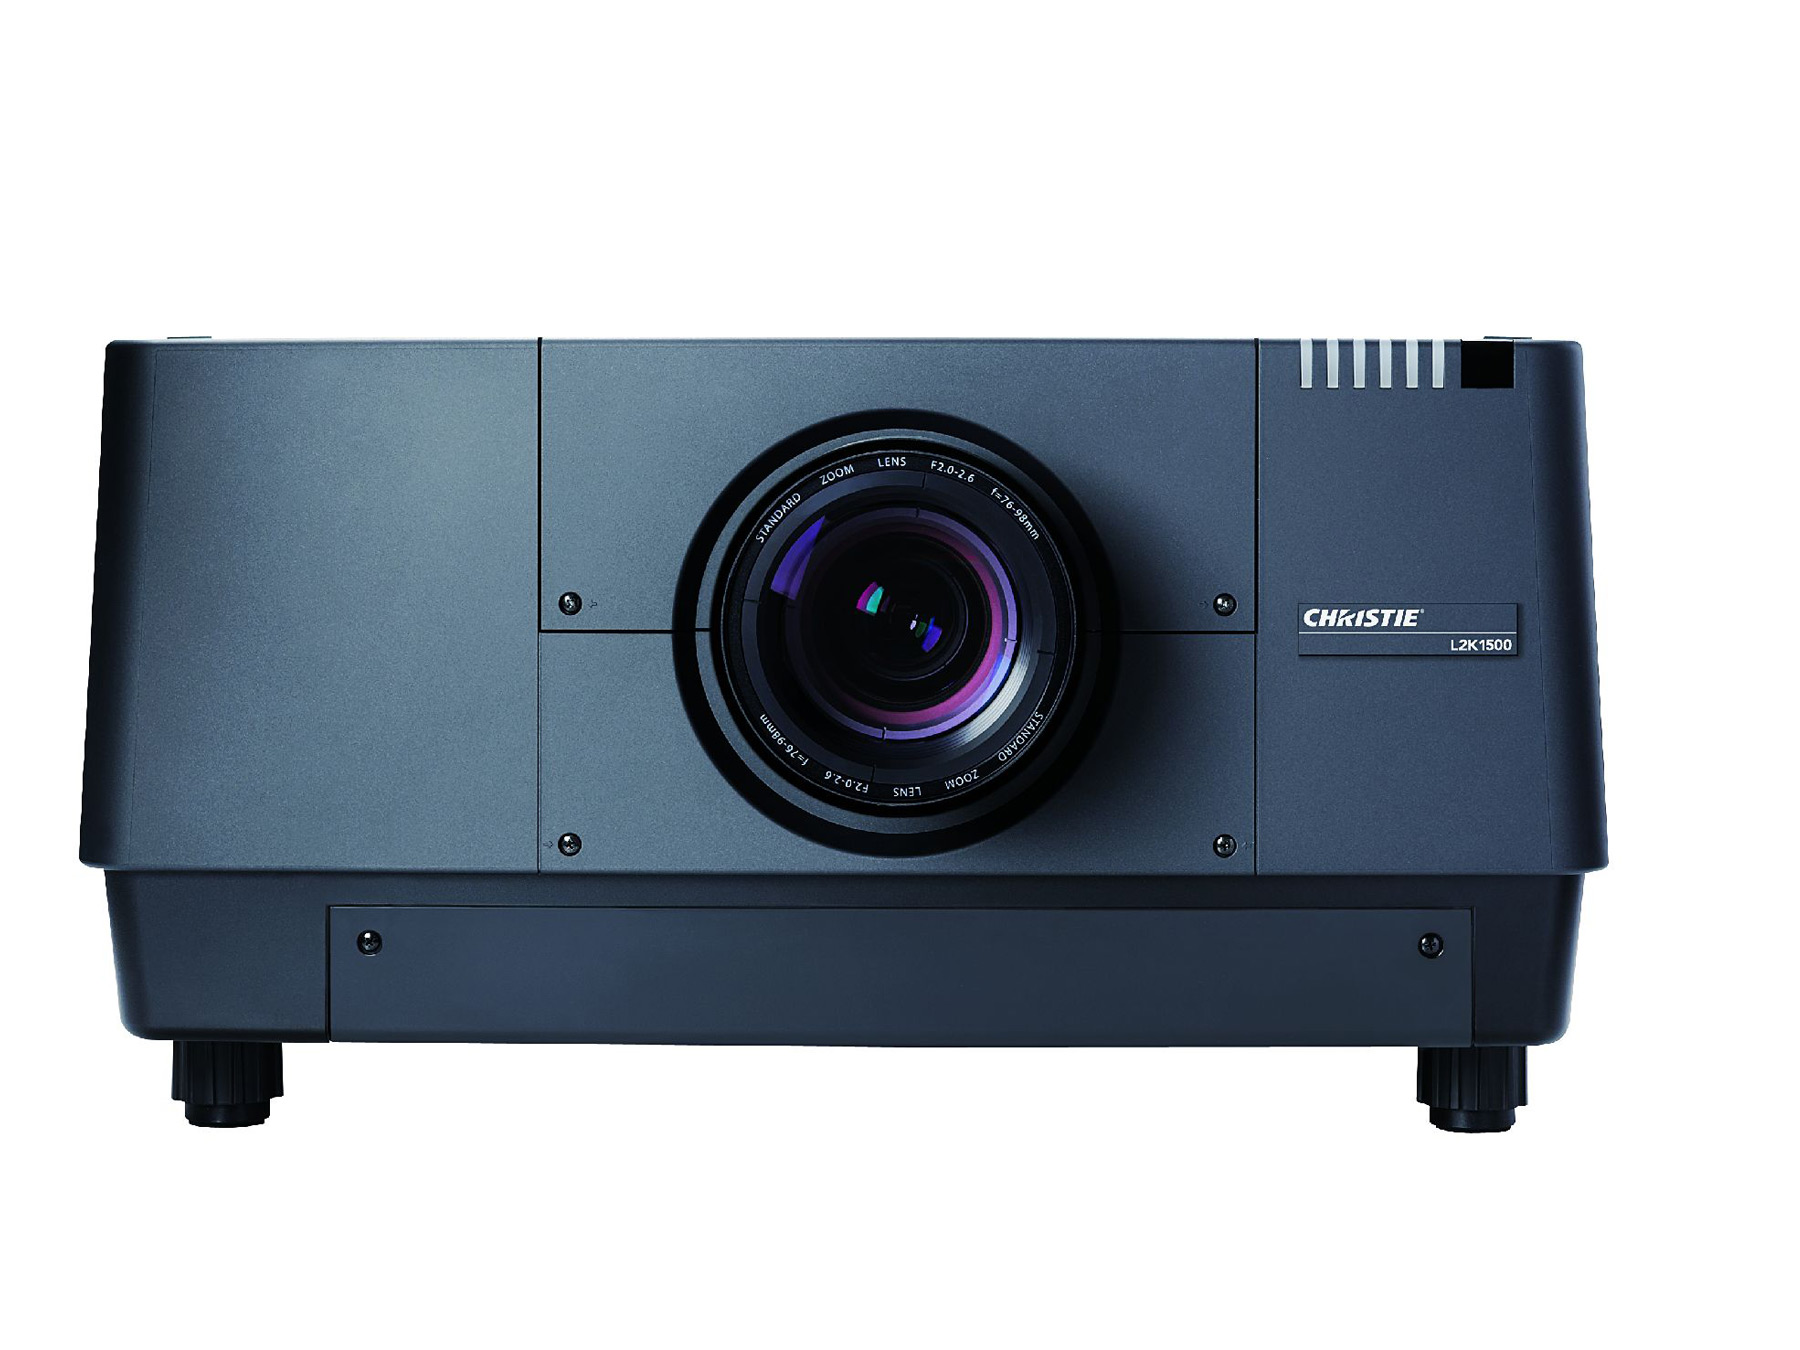 /globalassets/.catalog/products/images/christie-l2k1500/gallery/christie-l2k-1500-3-lcd-digital-projector-image-10.jpg